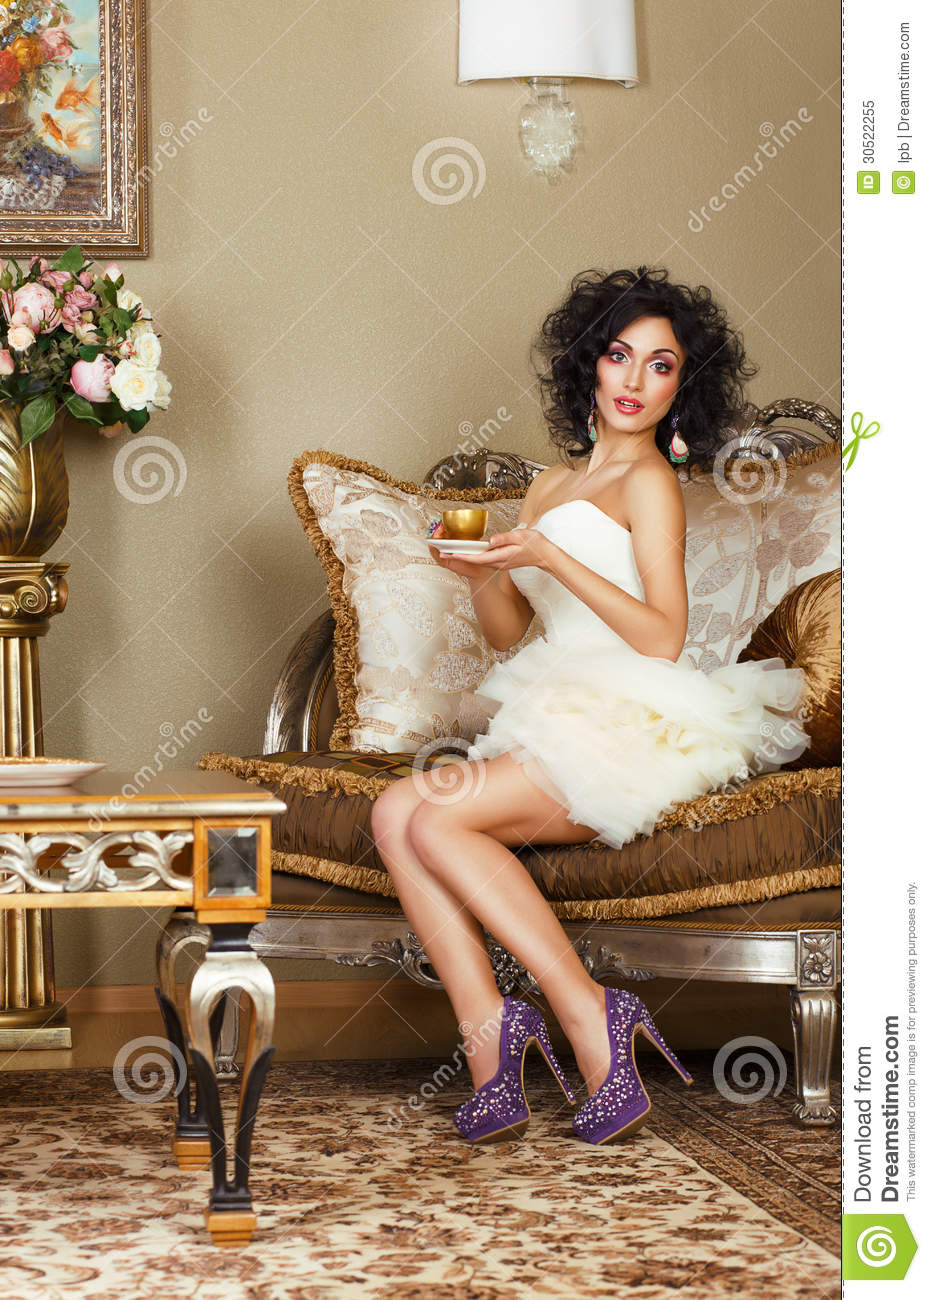 ... Of Coffee. Classic Interior Royalty Free Stock Photo - Image: 30522255